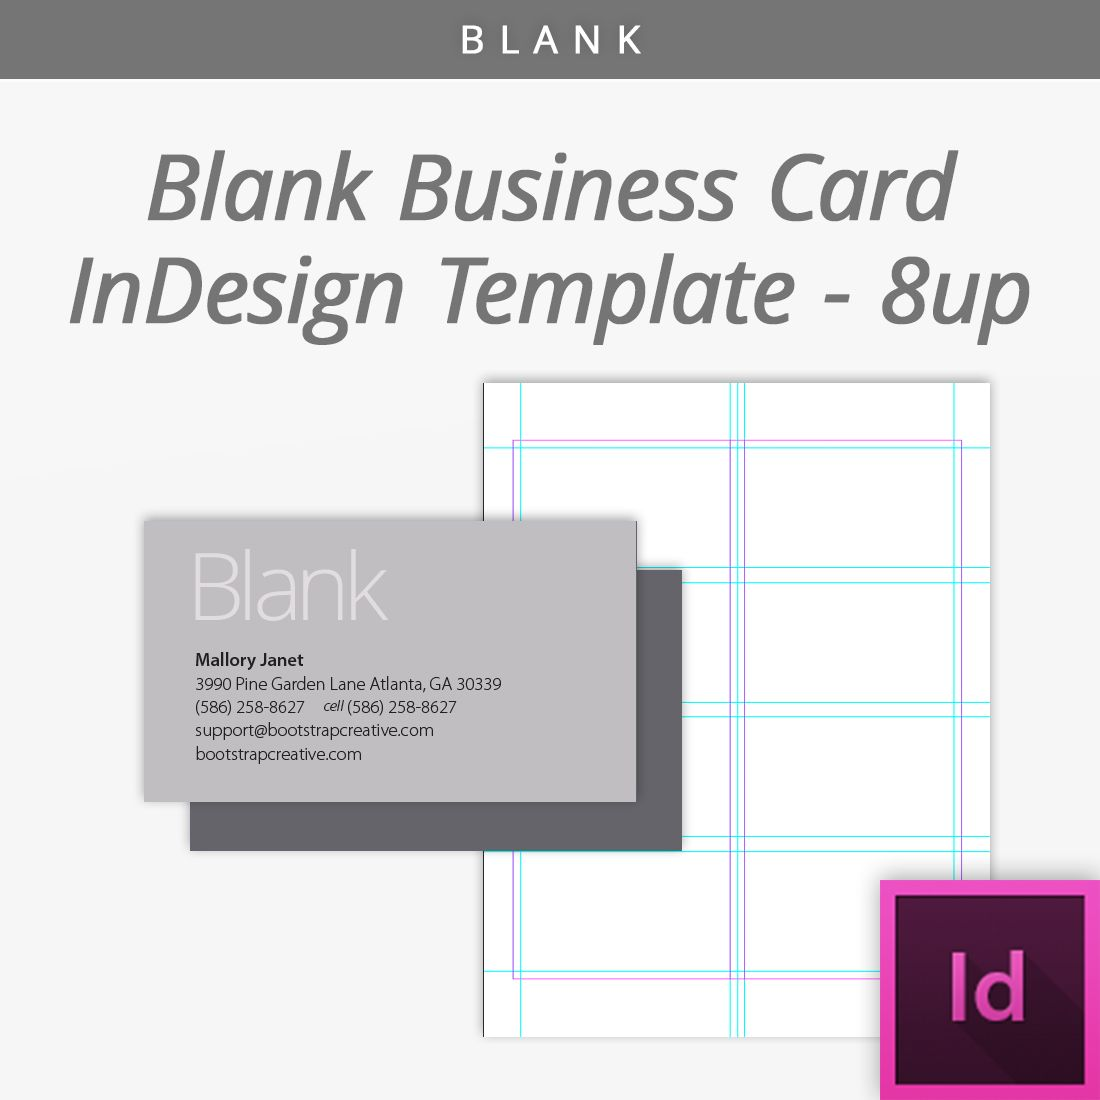 Blank indesign business card template 8 up free download blank indesign business card template 8 up free download designtemplate accmission